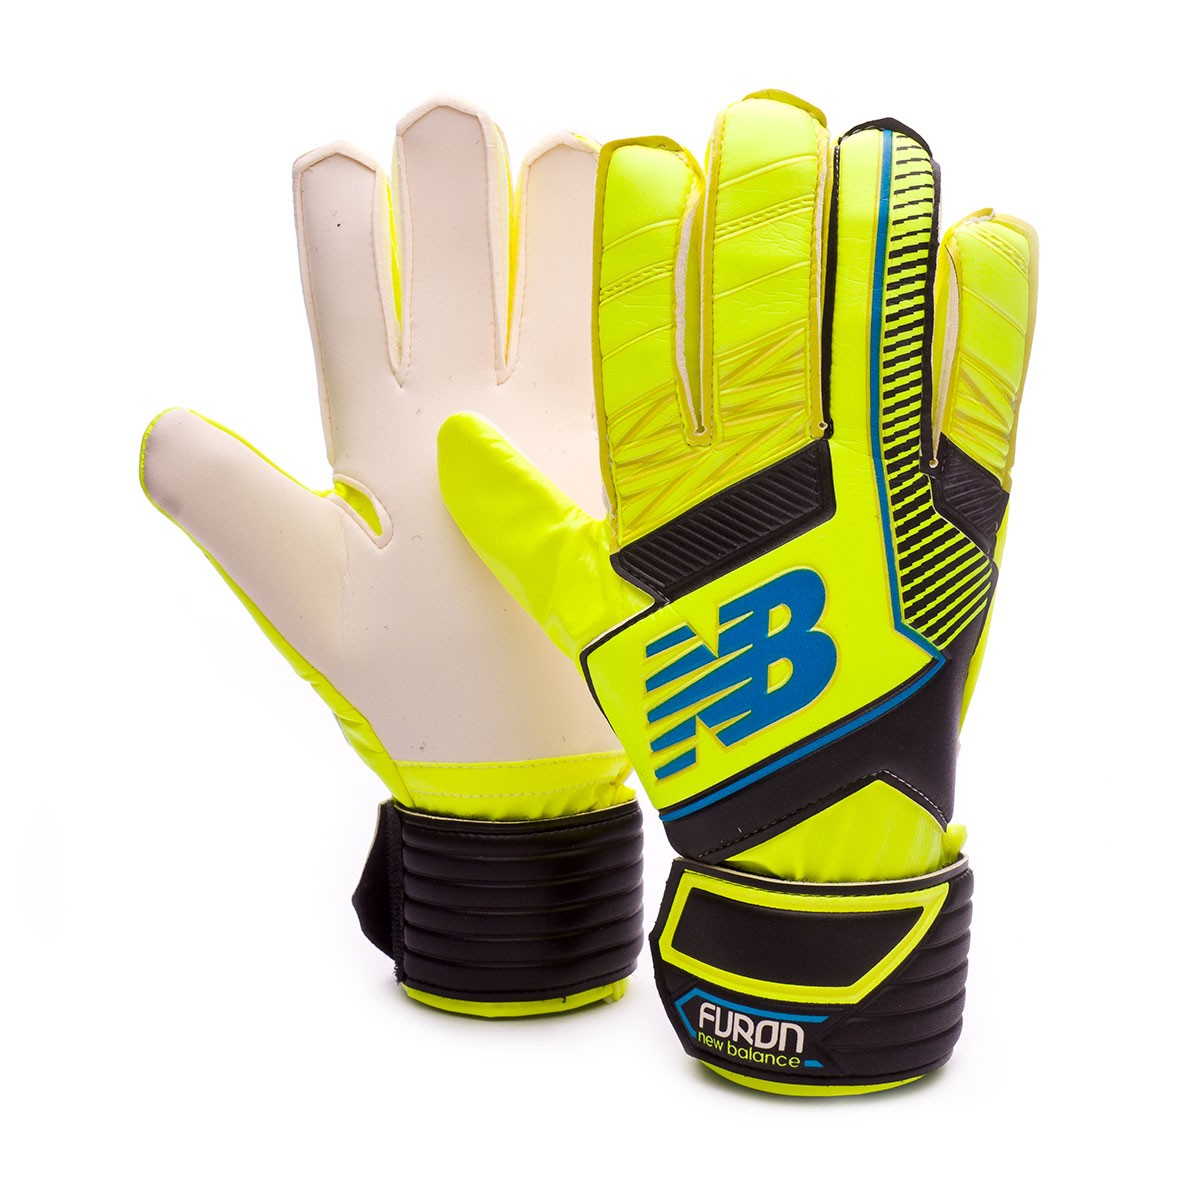 new balance gloves kids